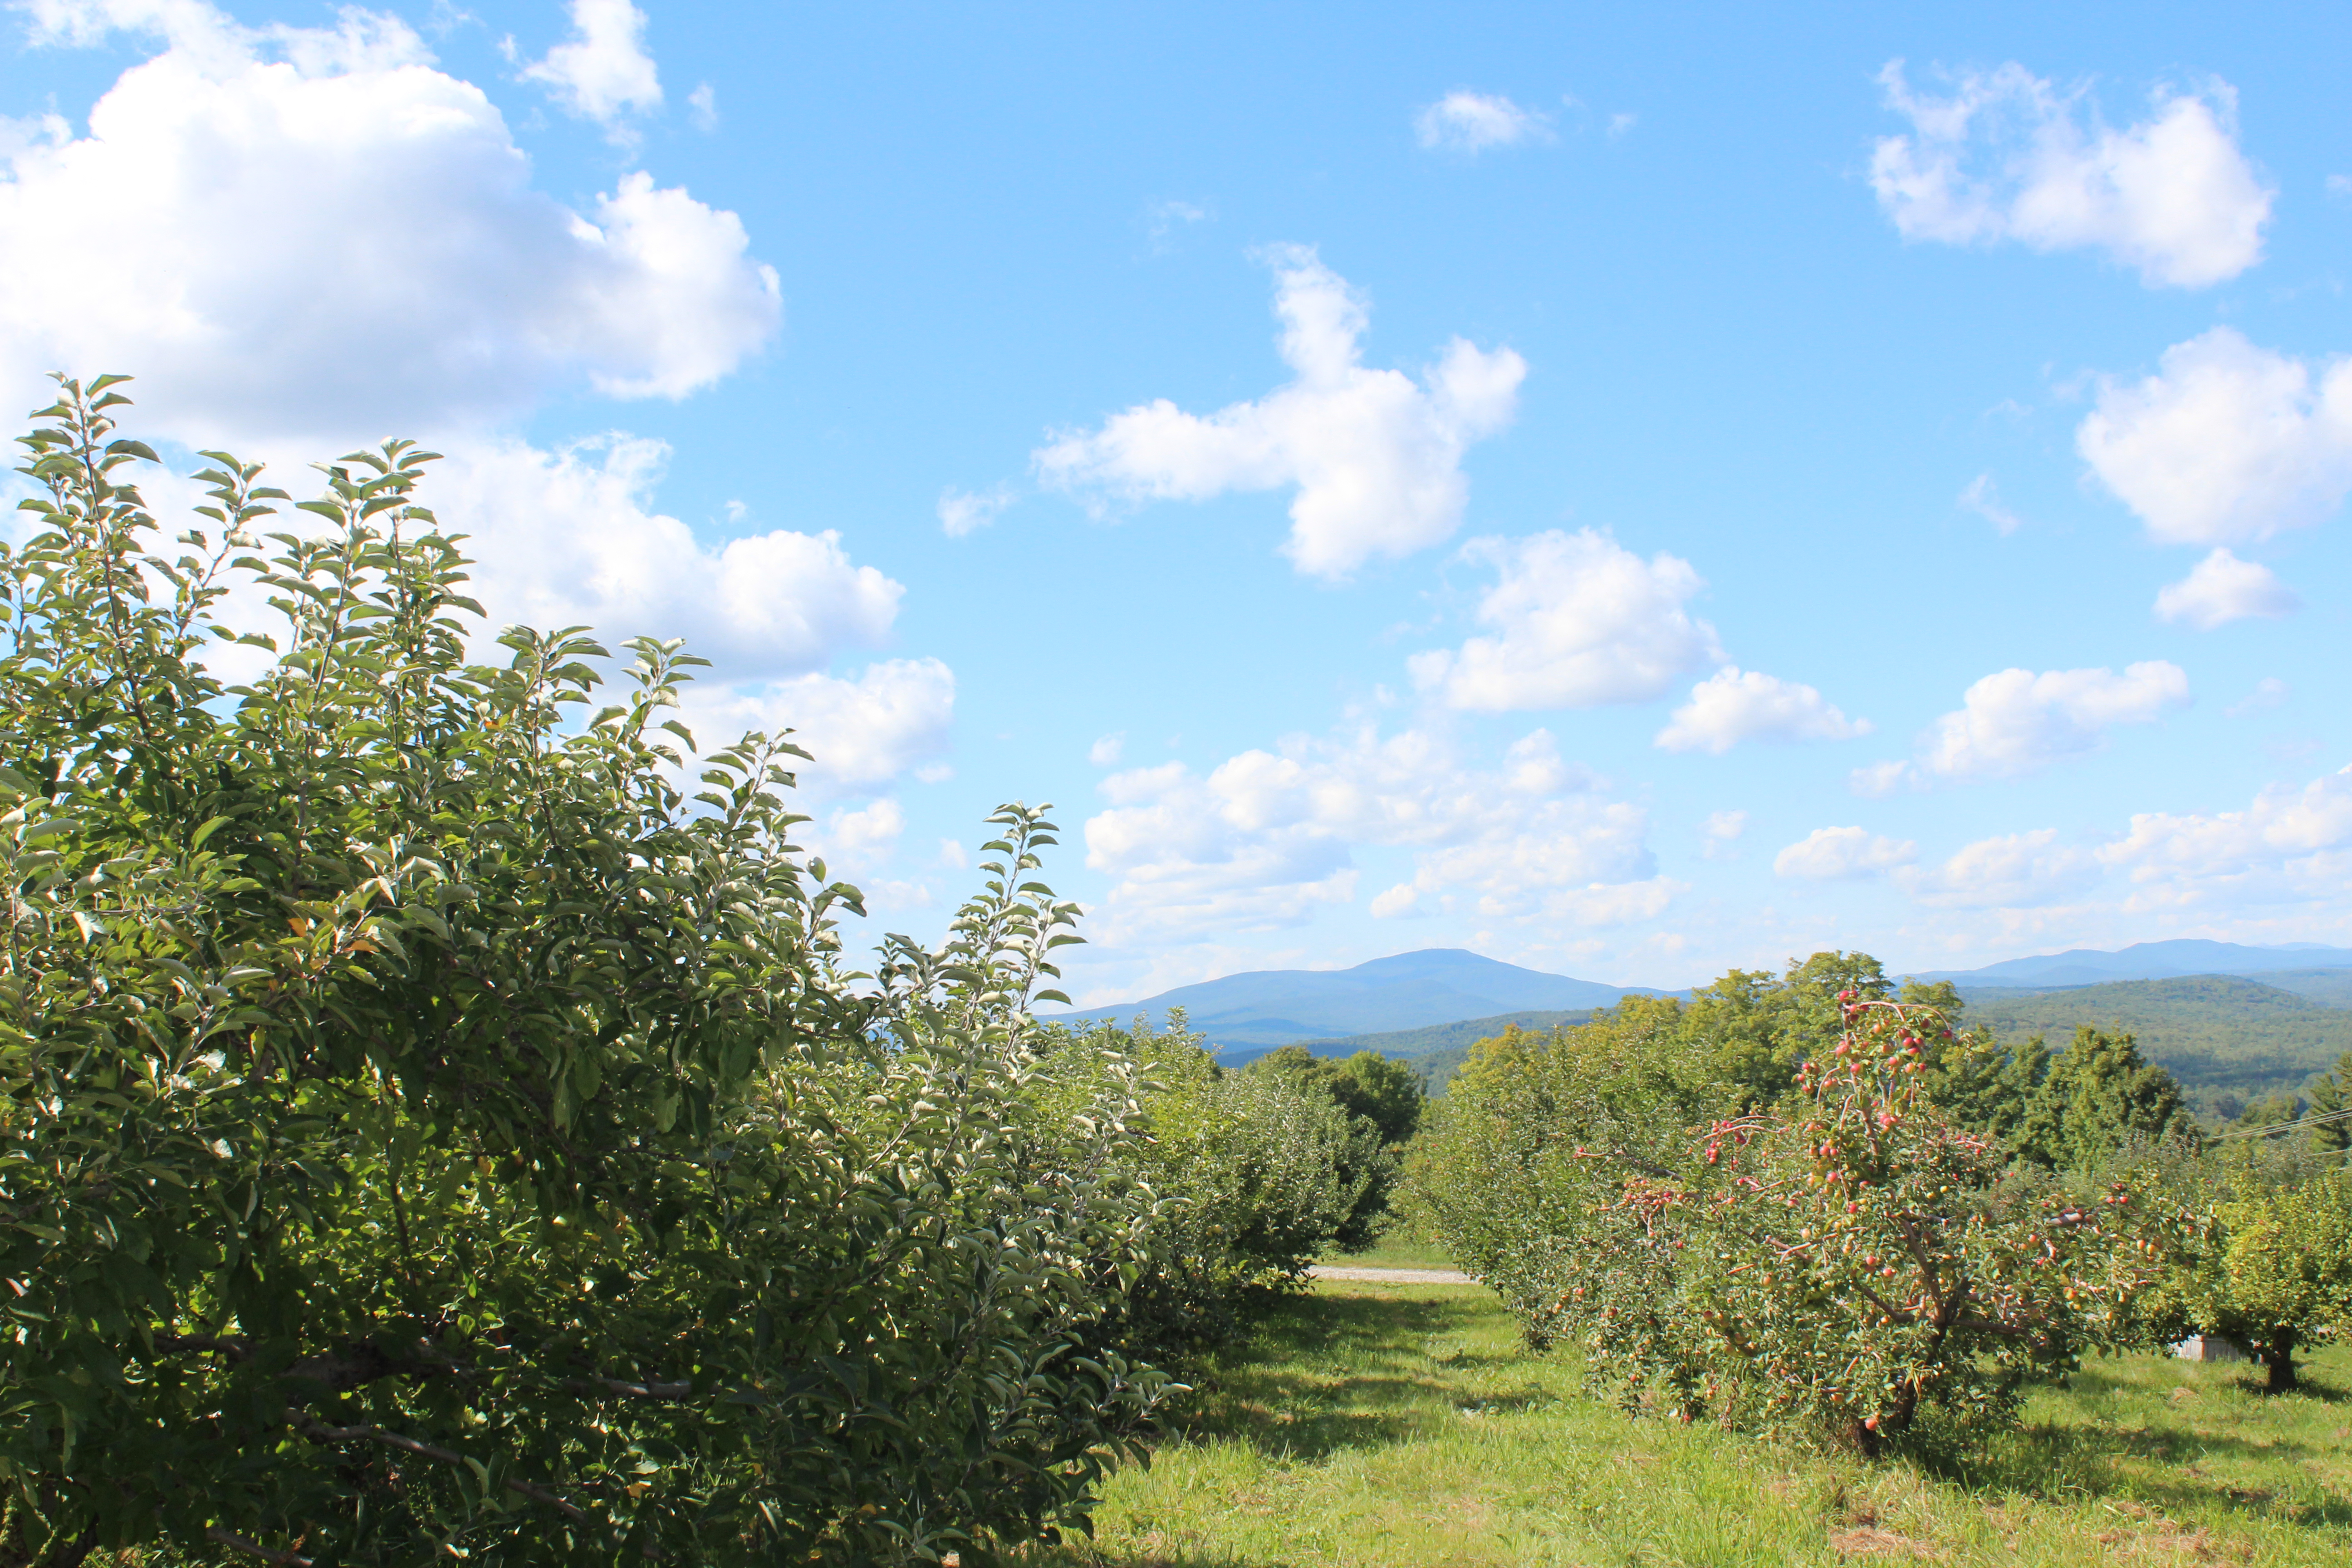 The western view toward Mount Kearsarge from Gould Hill Orchards, Contoocook, New Hampshire (Bar Lois Weeks photo)